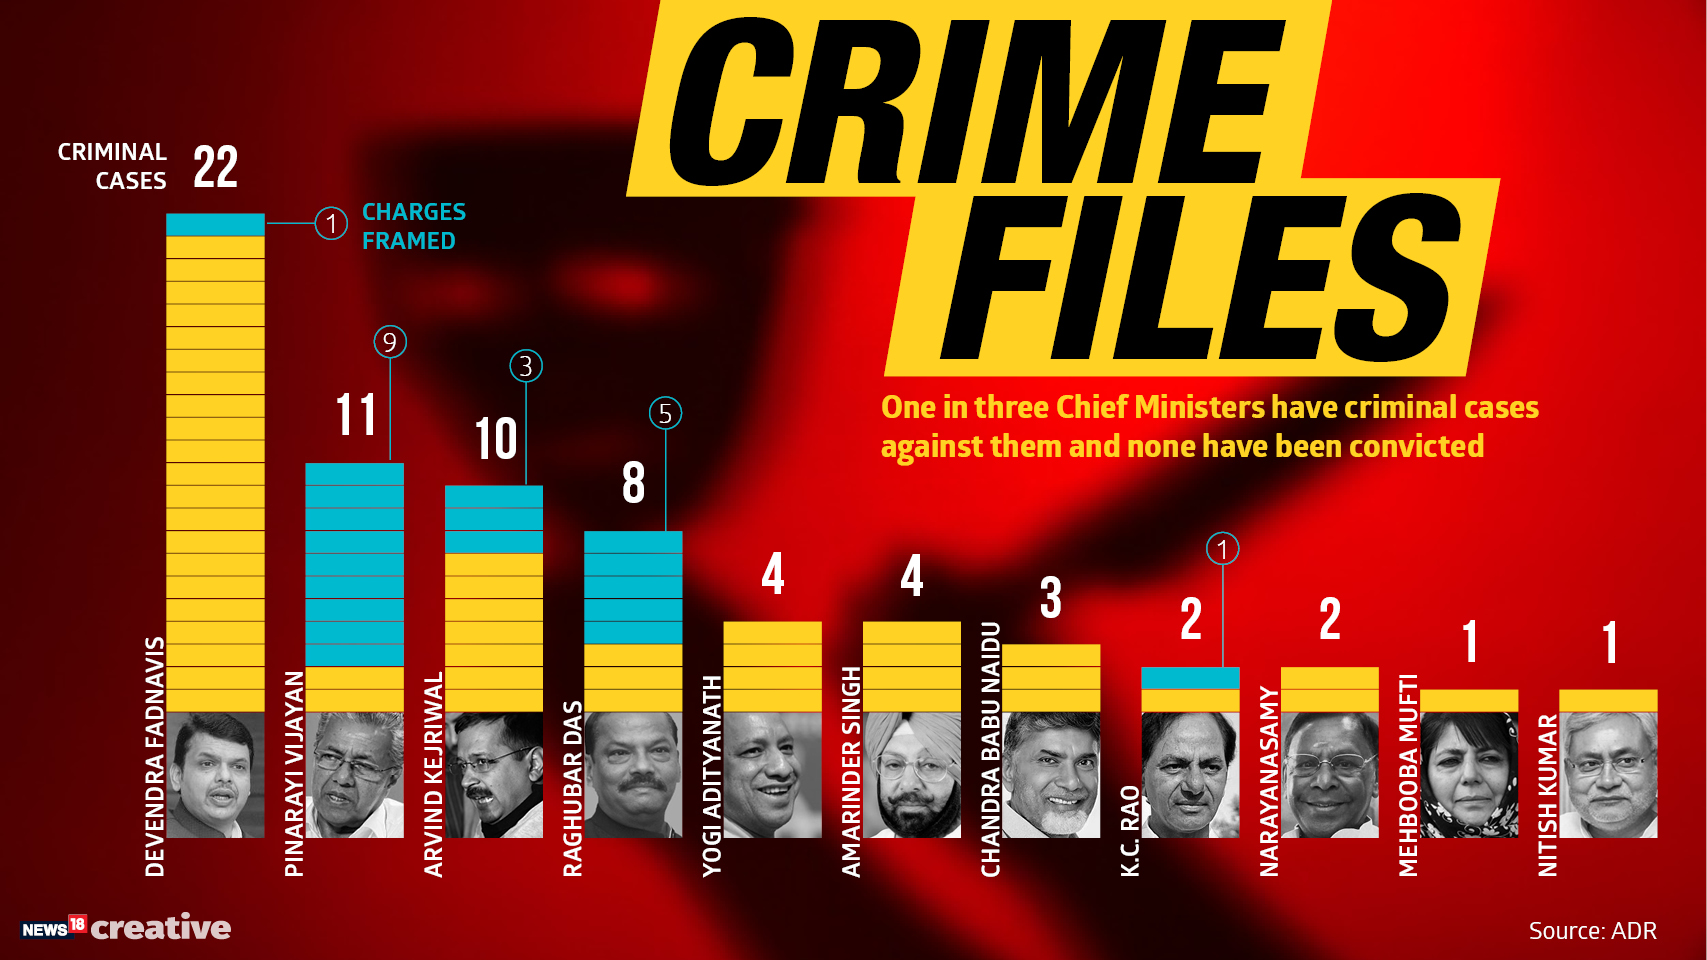 In India, around 35% chief ministers have criminal cases against them and 81% of the total are crorepatis, according to an ADR report.